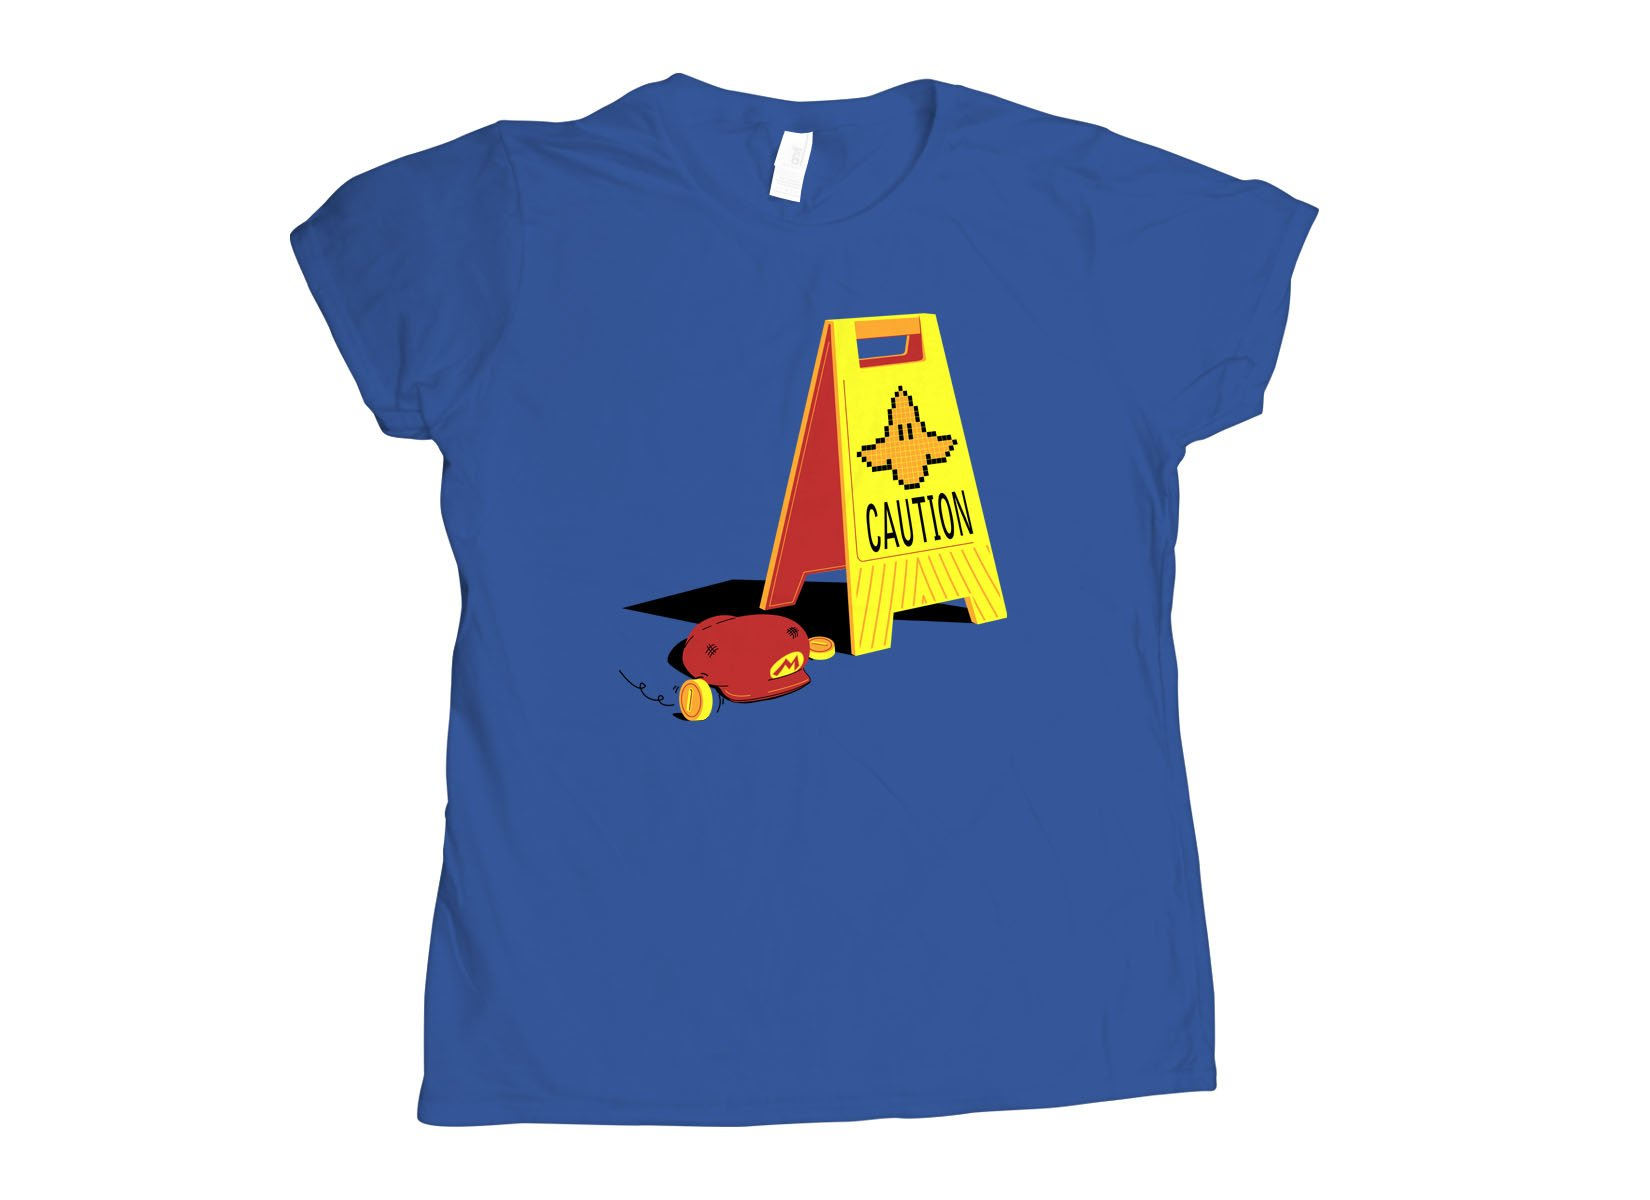 Caution Banana on Womens T-Shirt